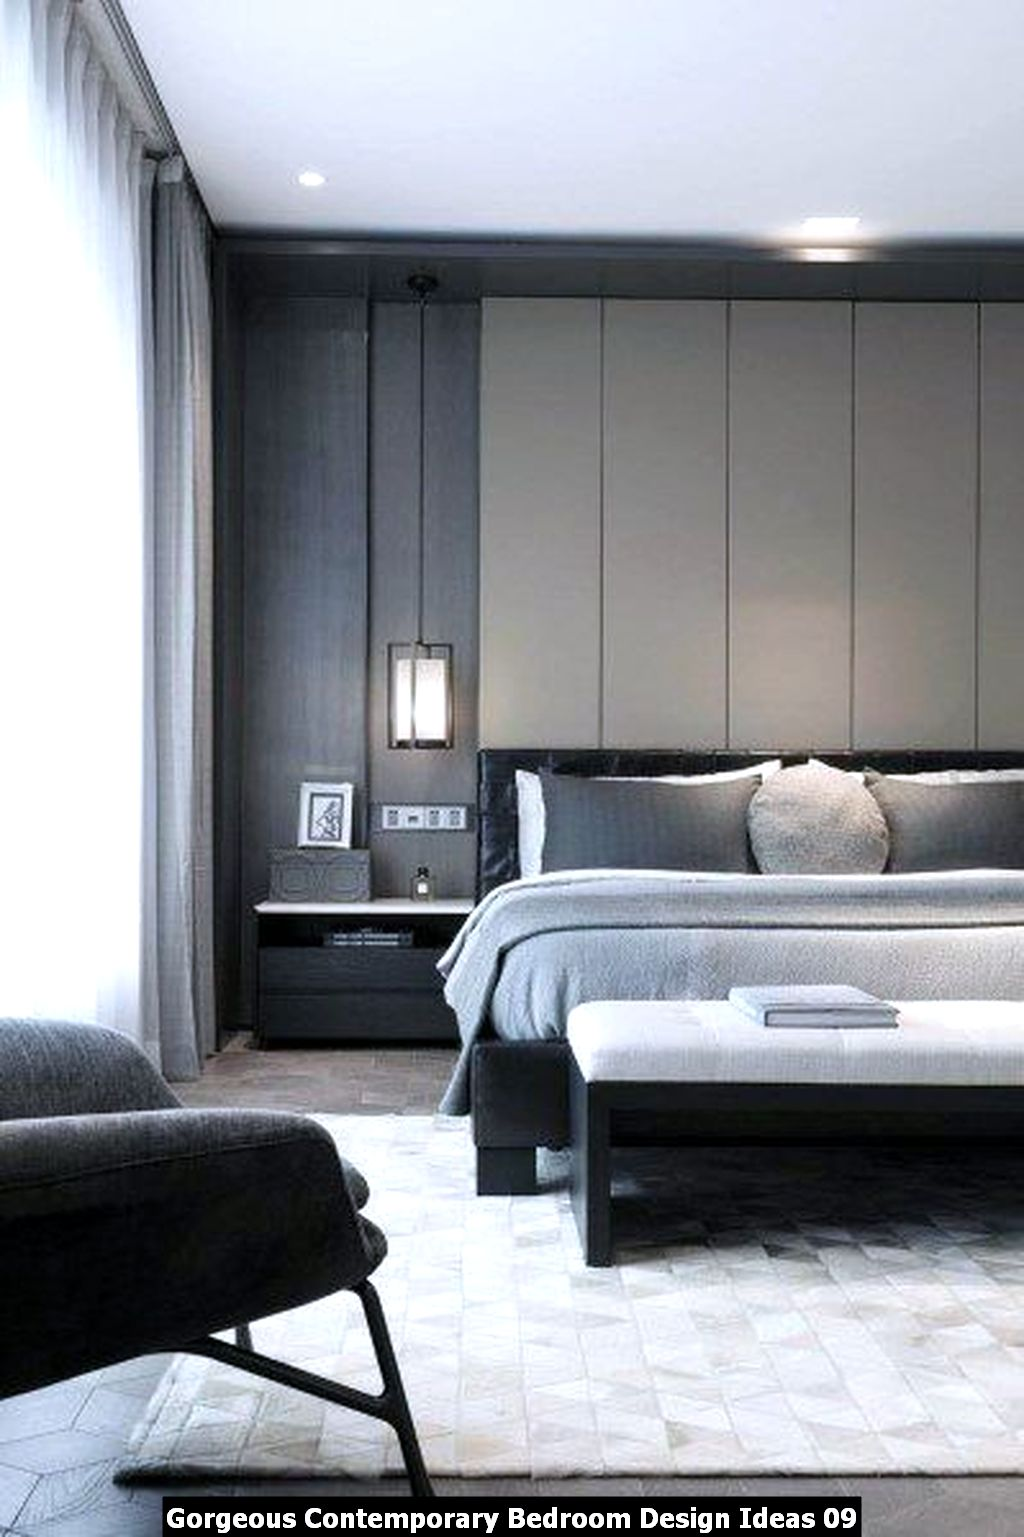 Gorgeous Contemporary Bedroom Design Ideas 09